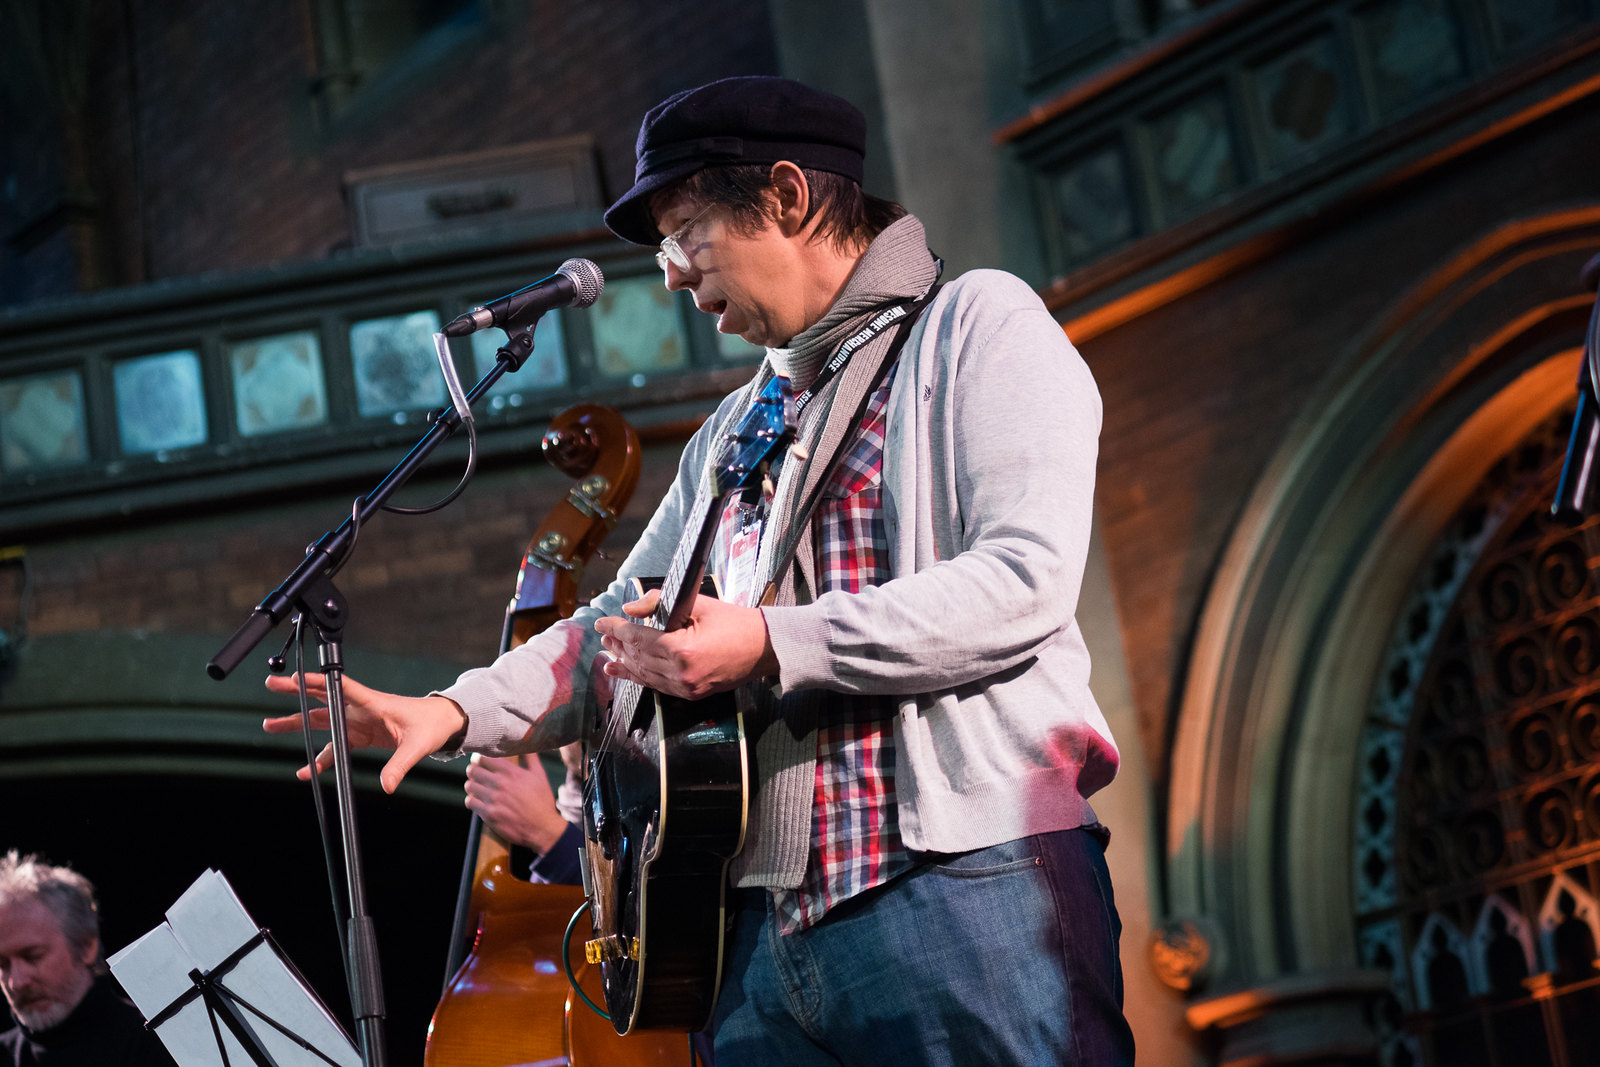 Darren Hayman - Daylight Music 24th January 2015